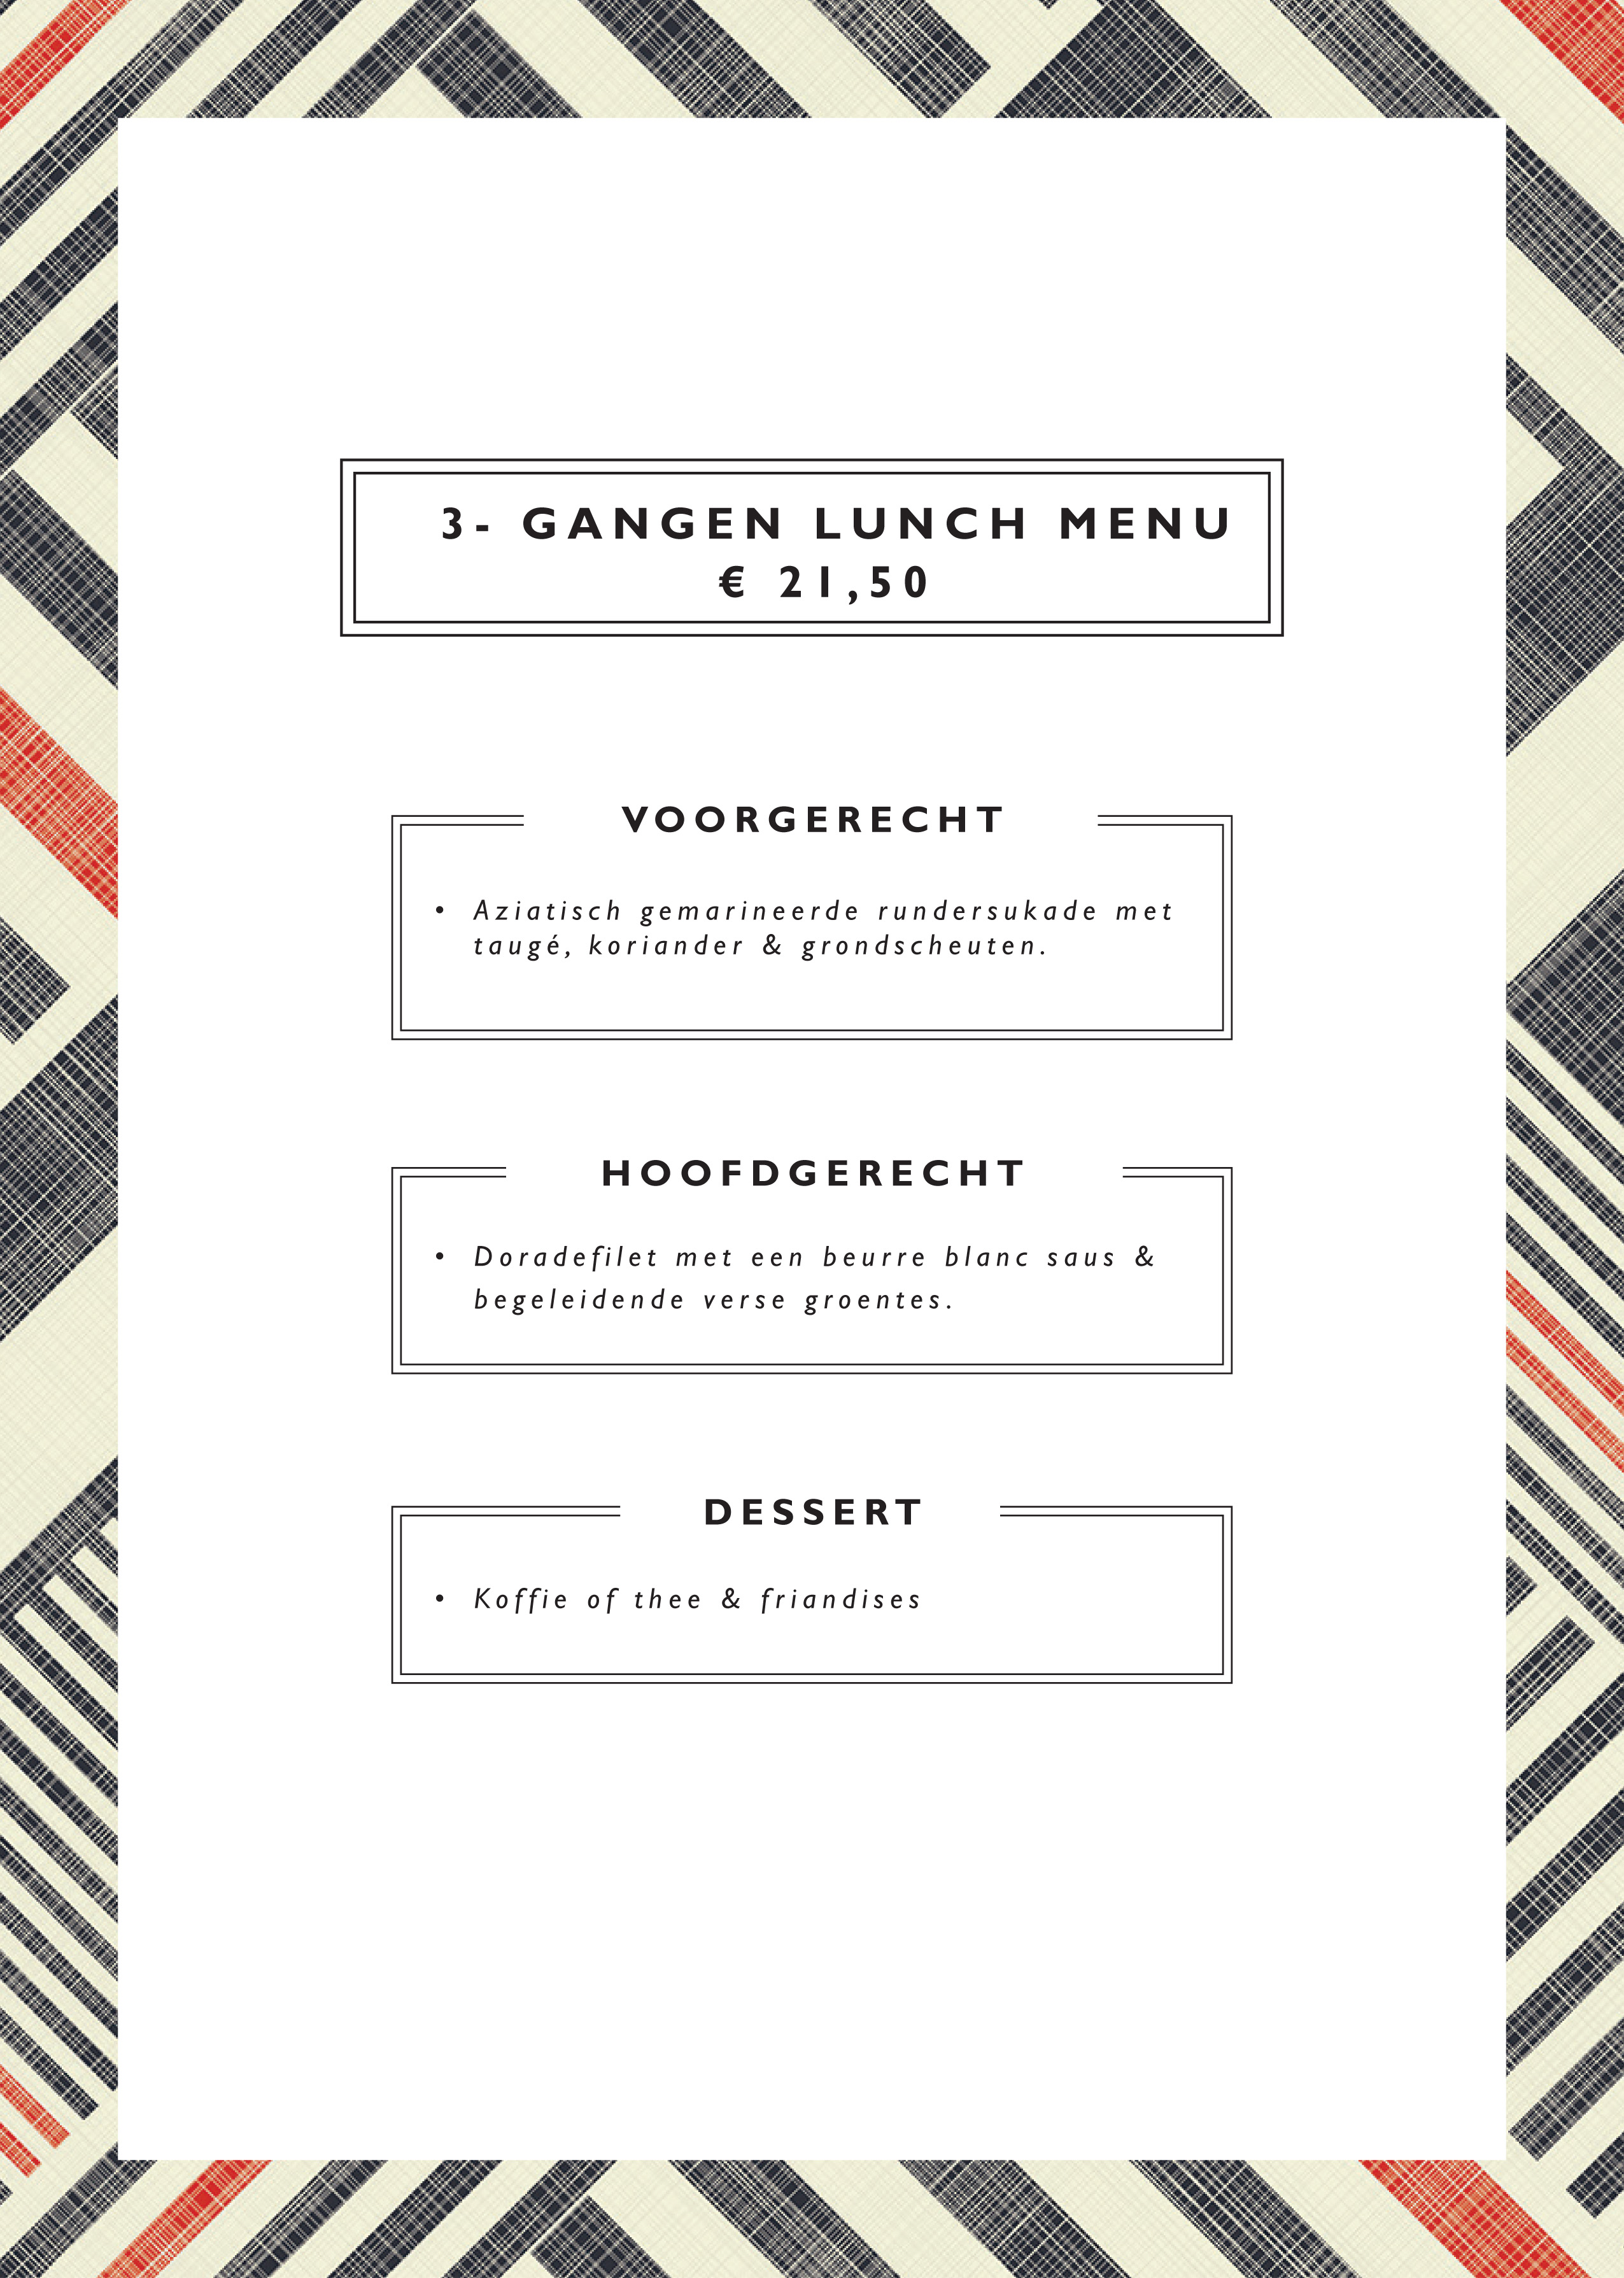 3 gangen lunch menu_A4-1